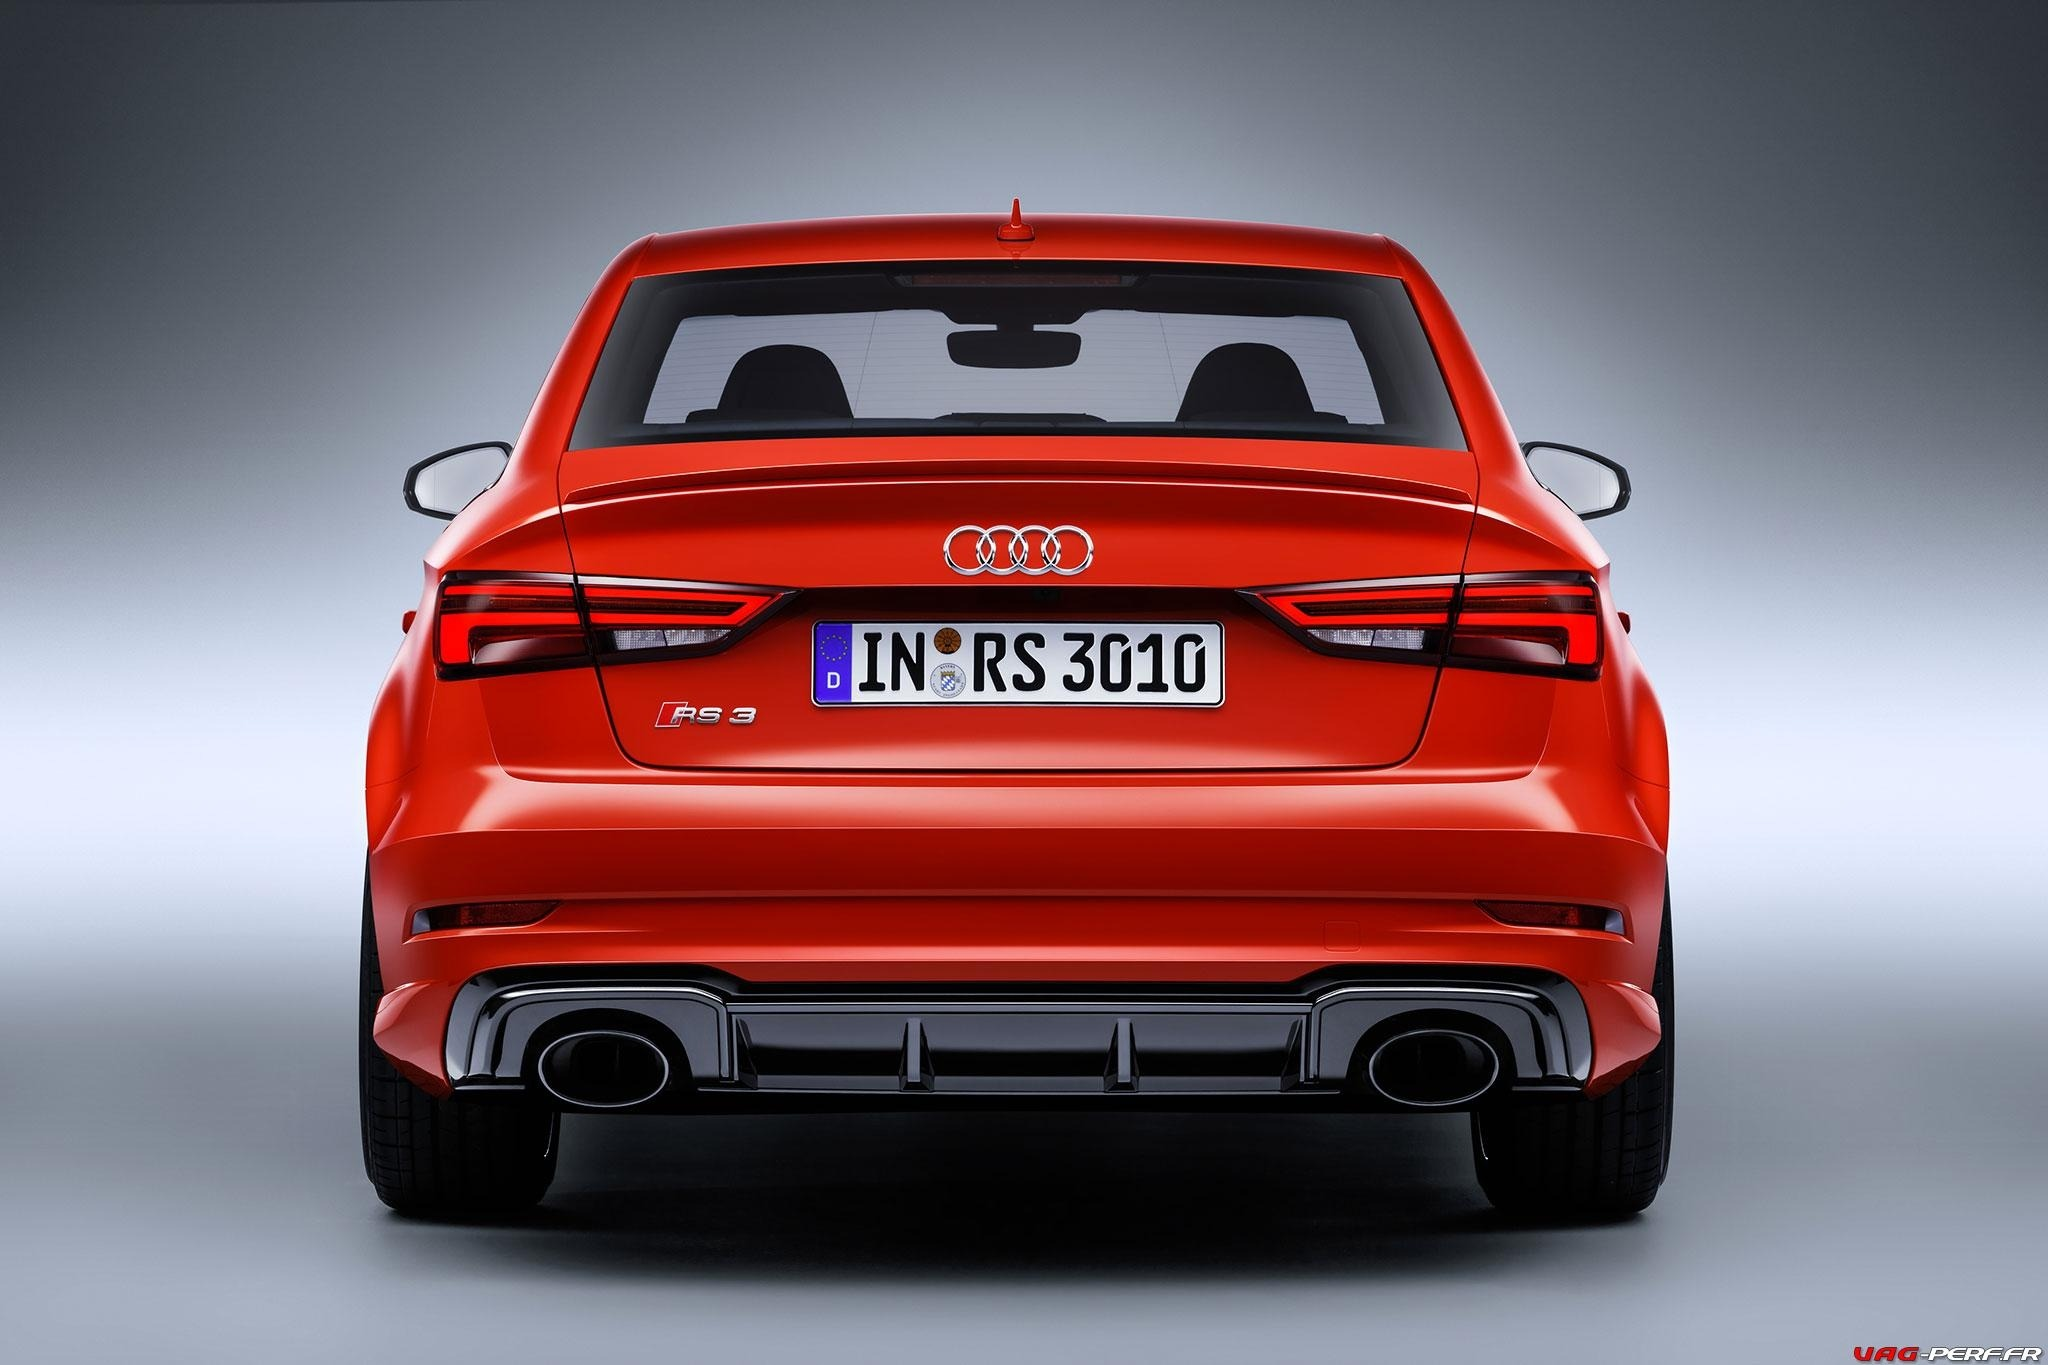 2016_Audi-RS3-Sedan-Officiel_03